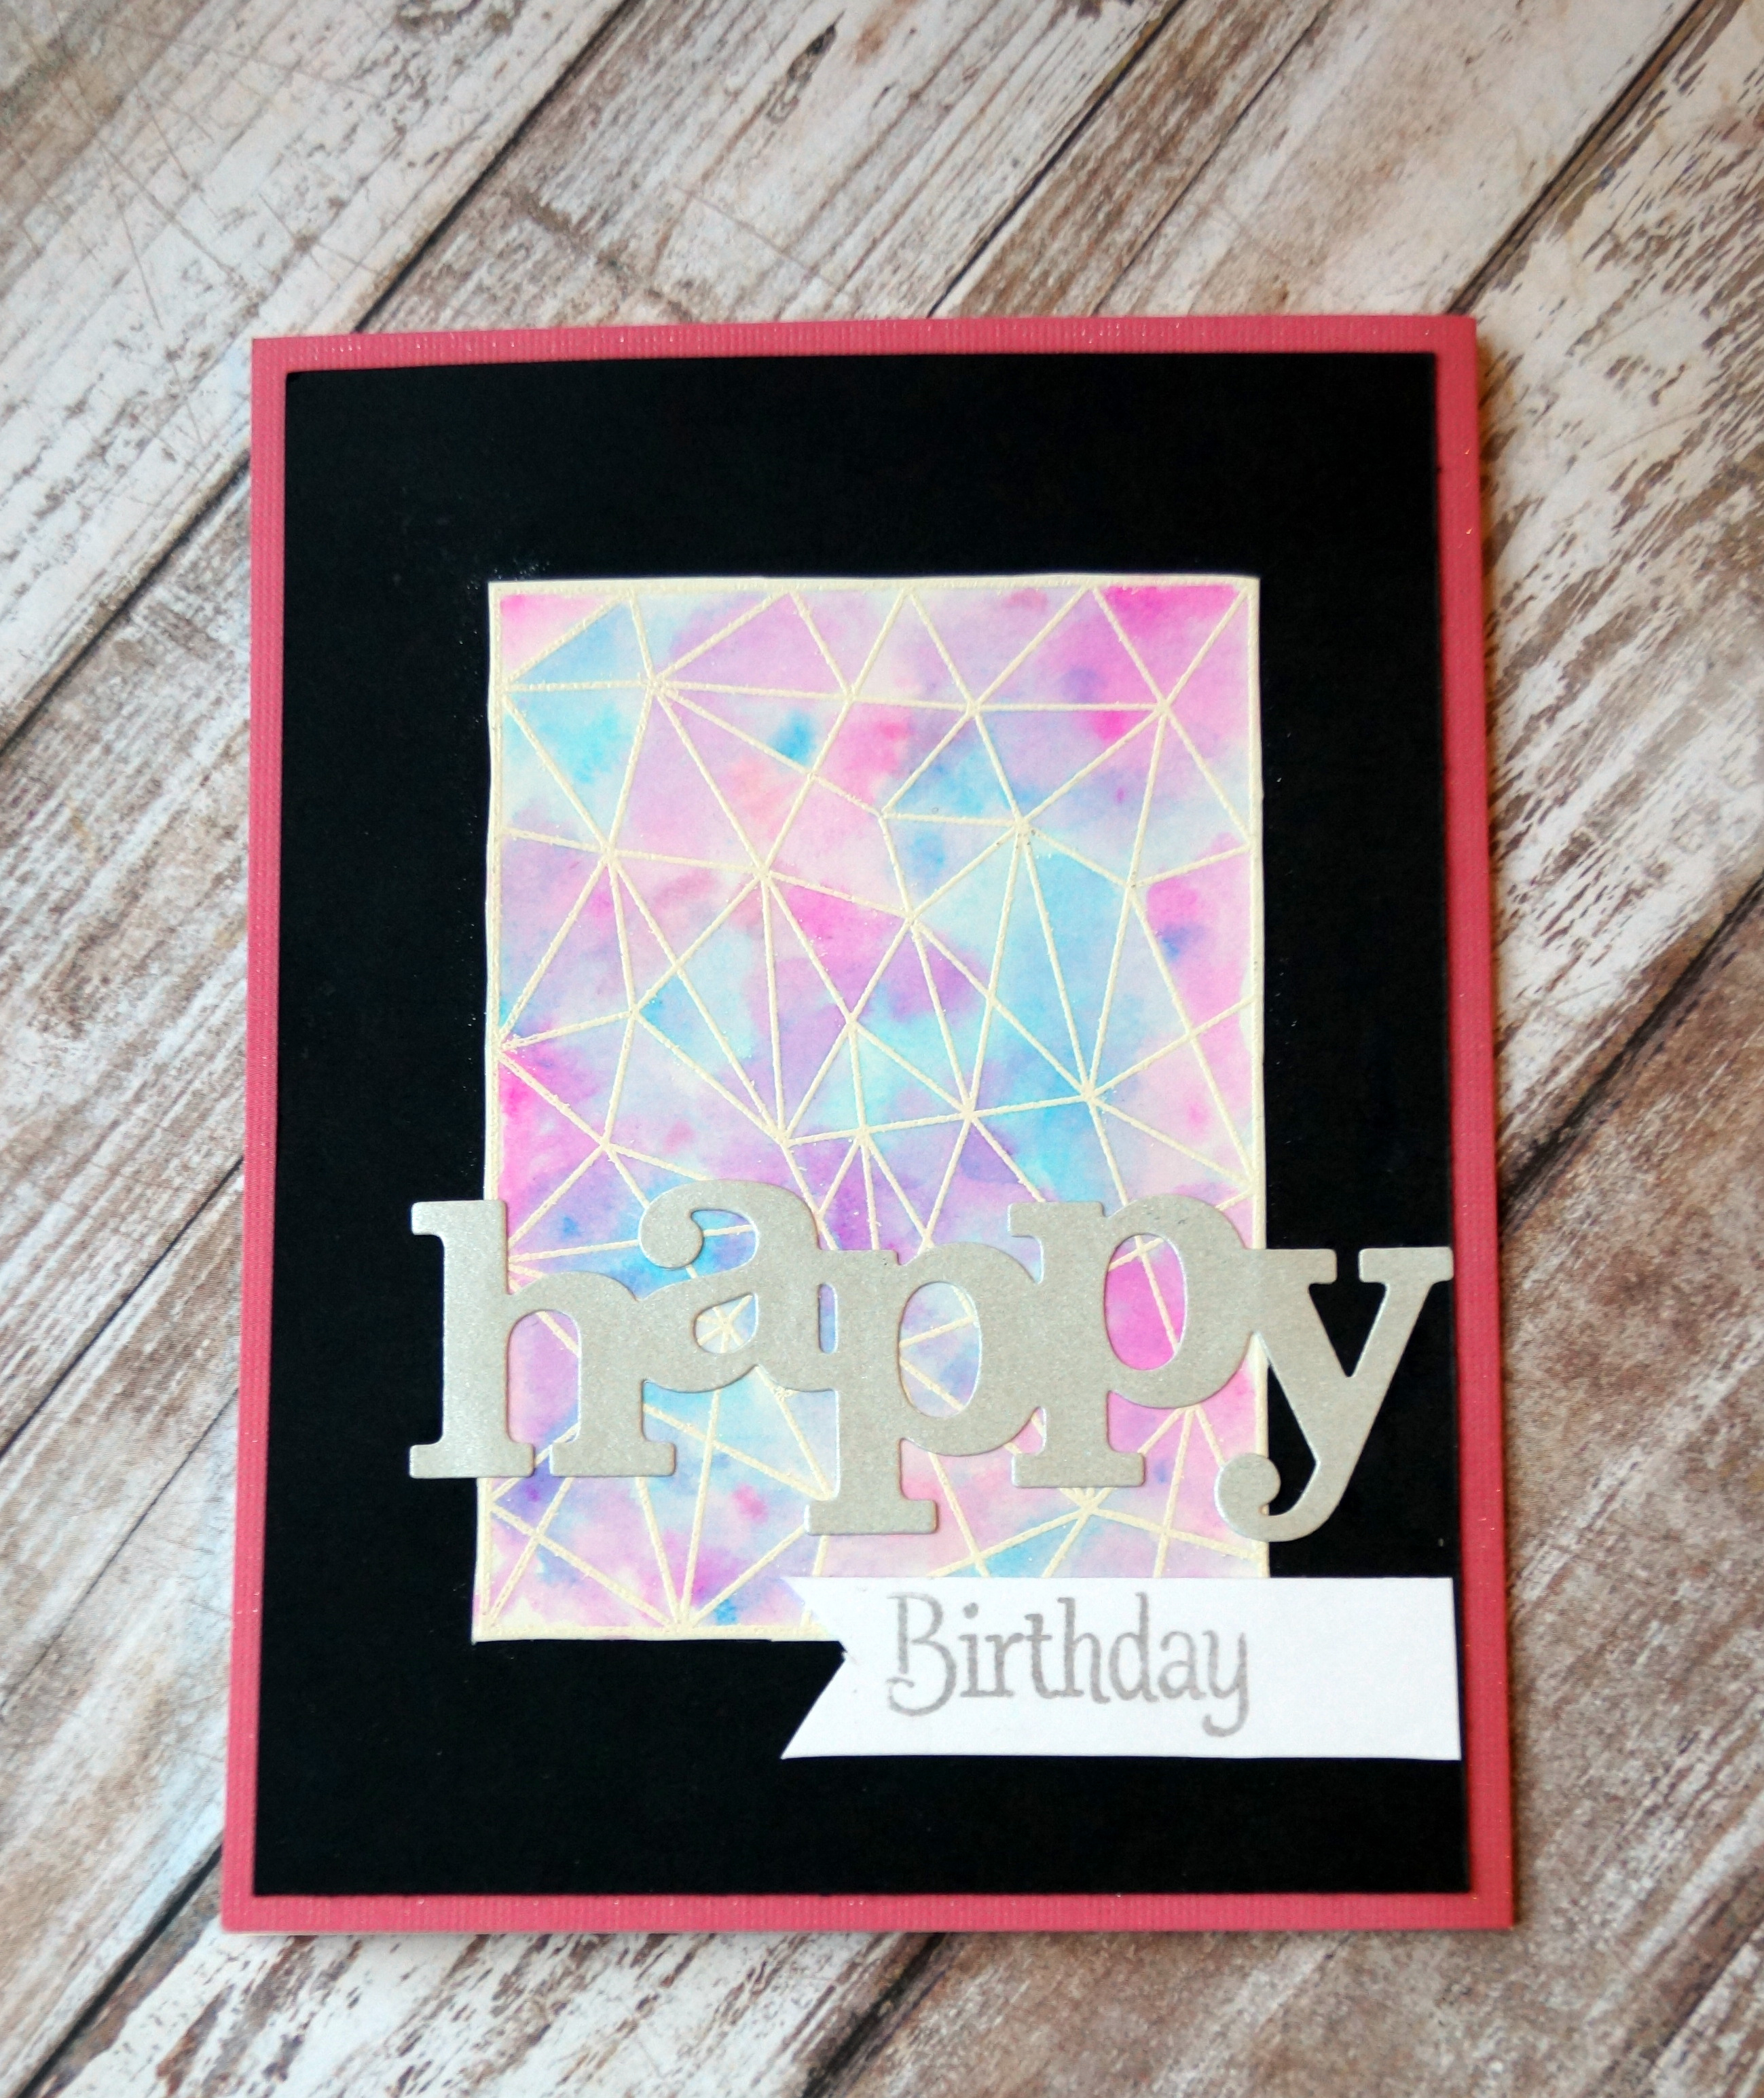 Happy Birthday W&W teen card